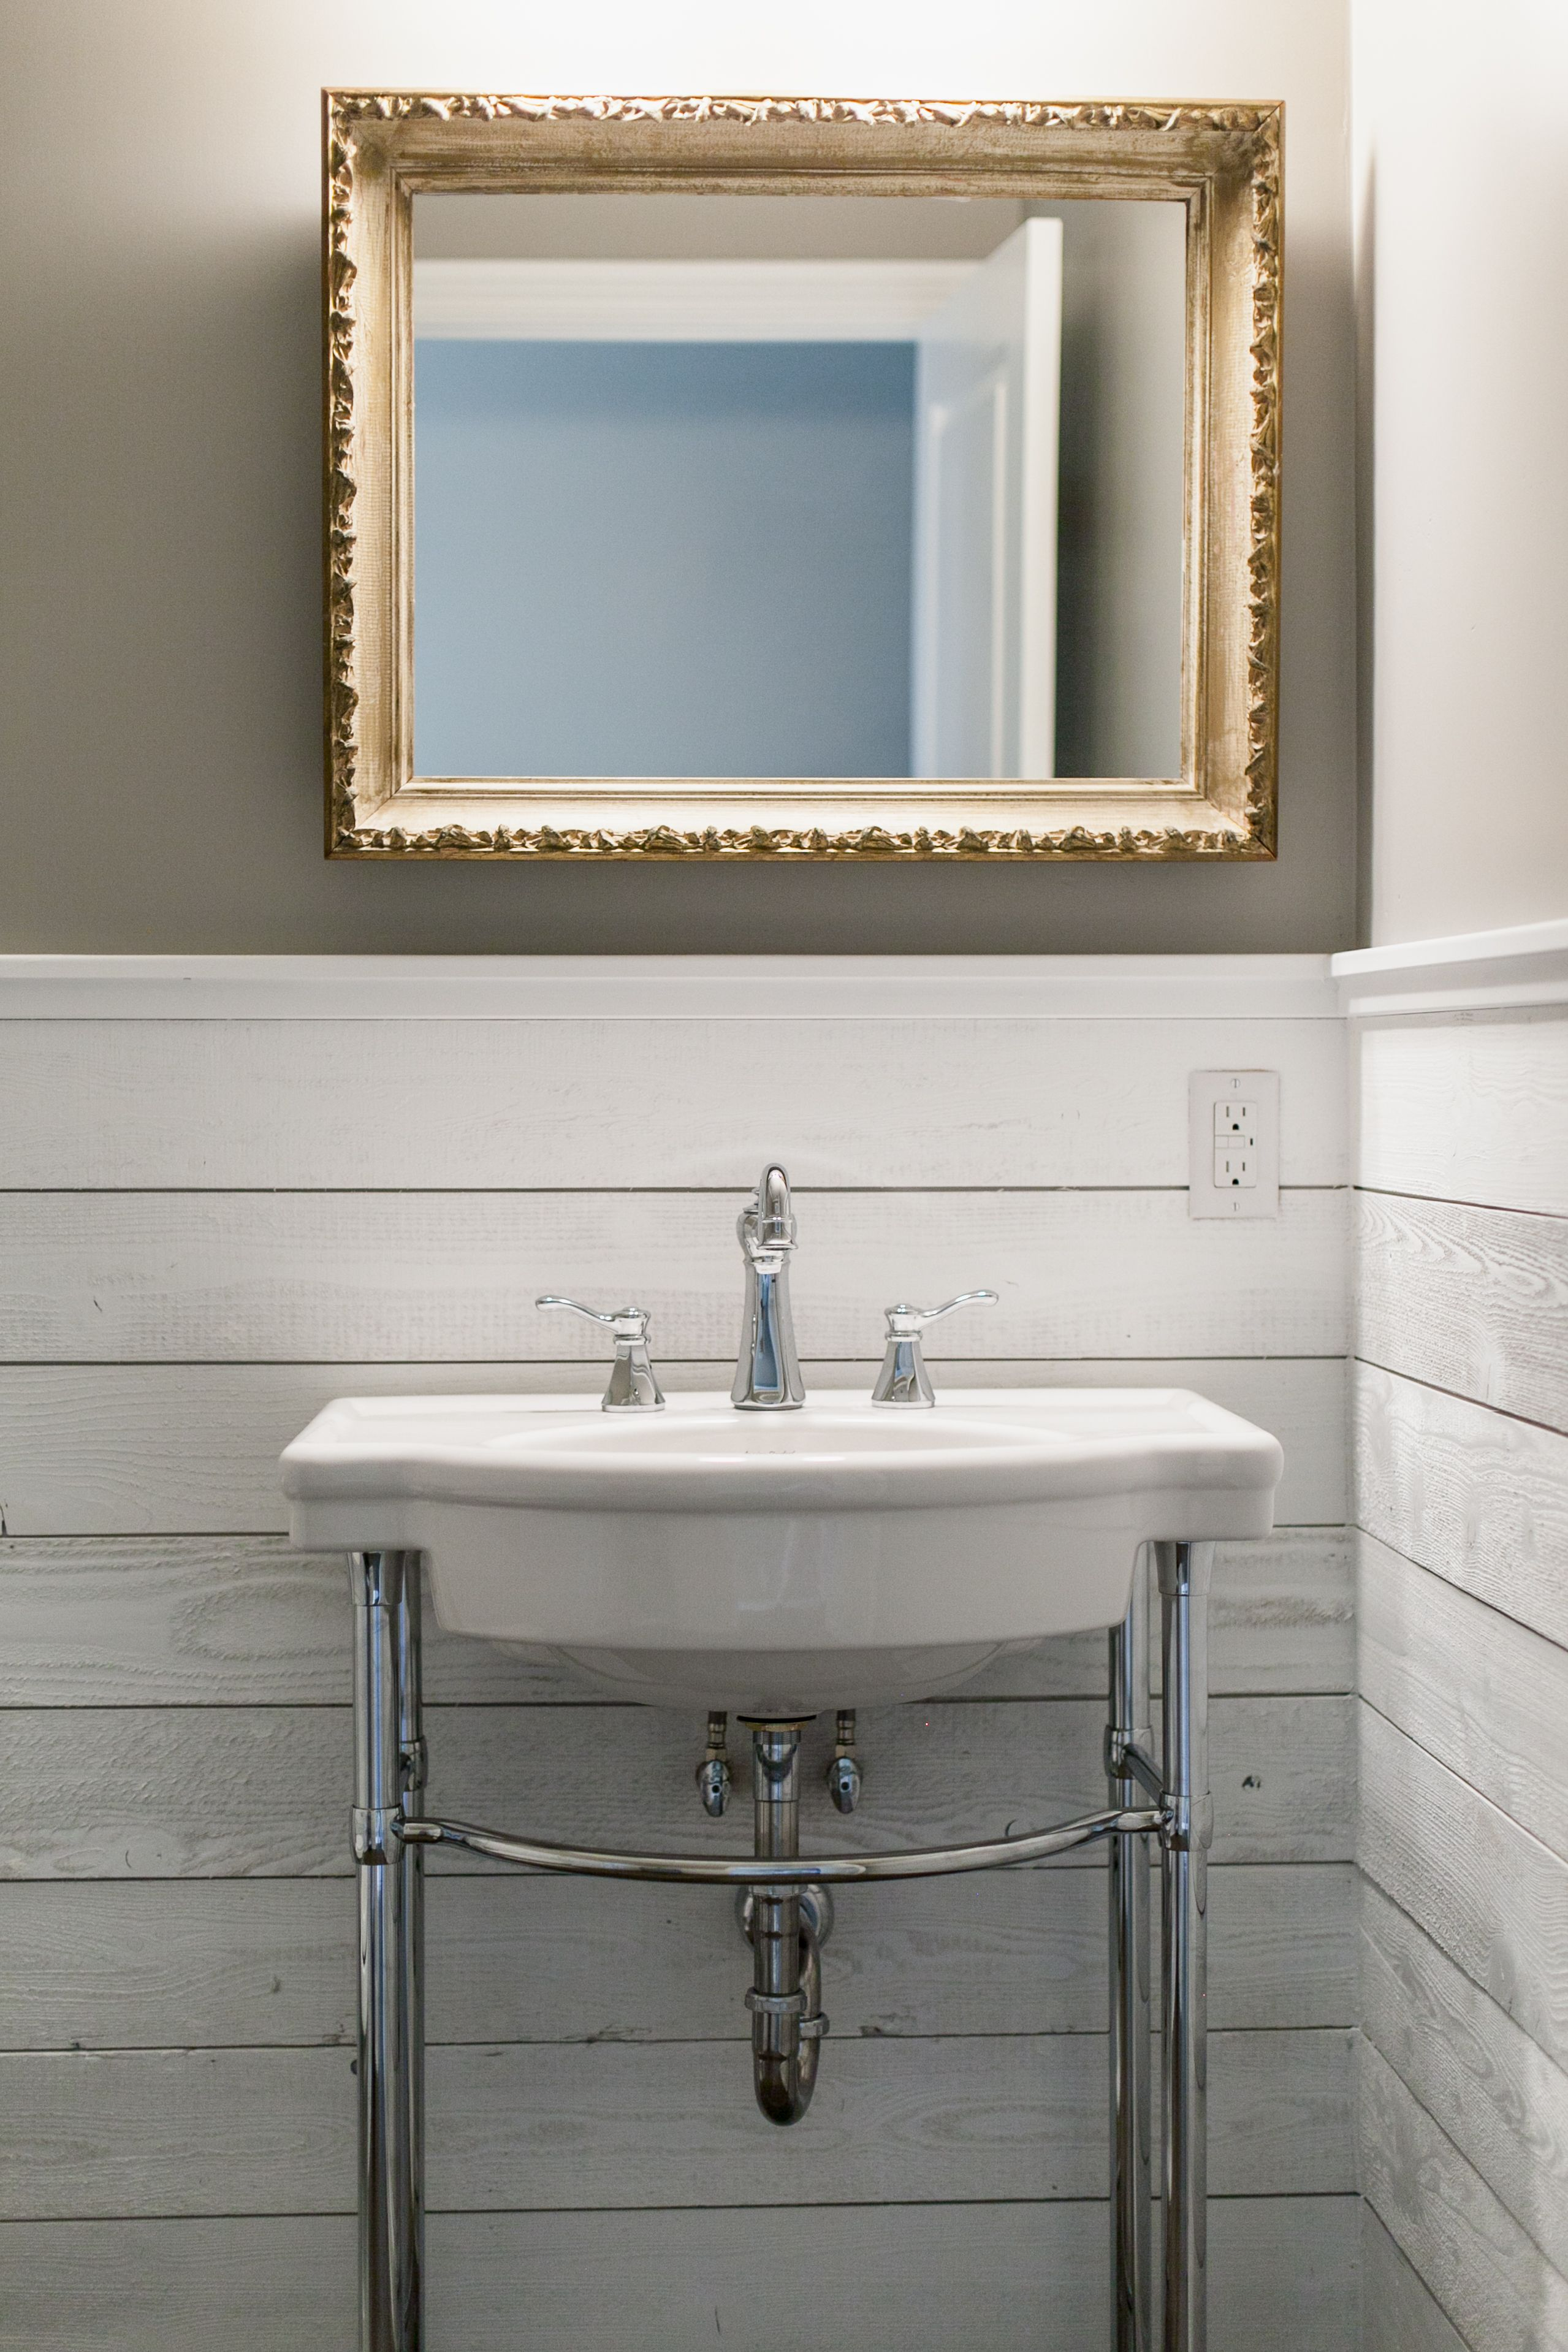 Whitewash Bathroom Vanity Wainscoting With Rough Sawn Planked Walls In A Powder Room